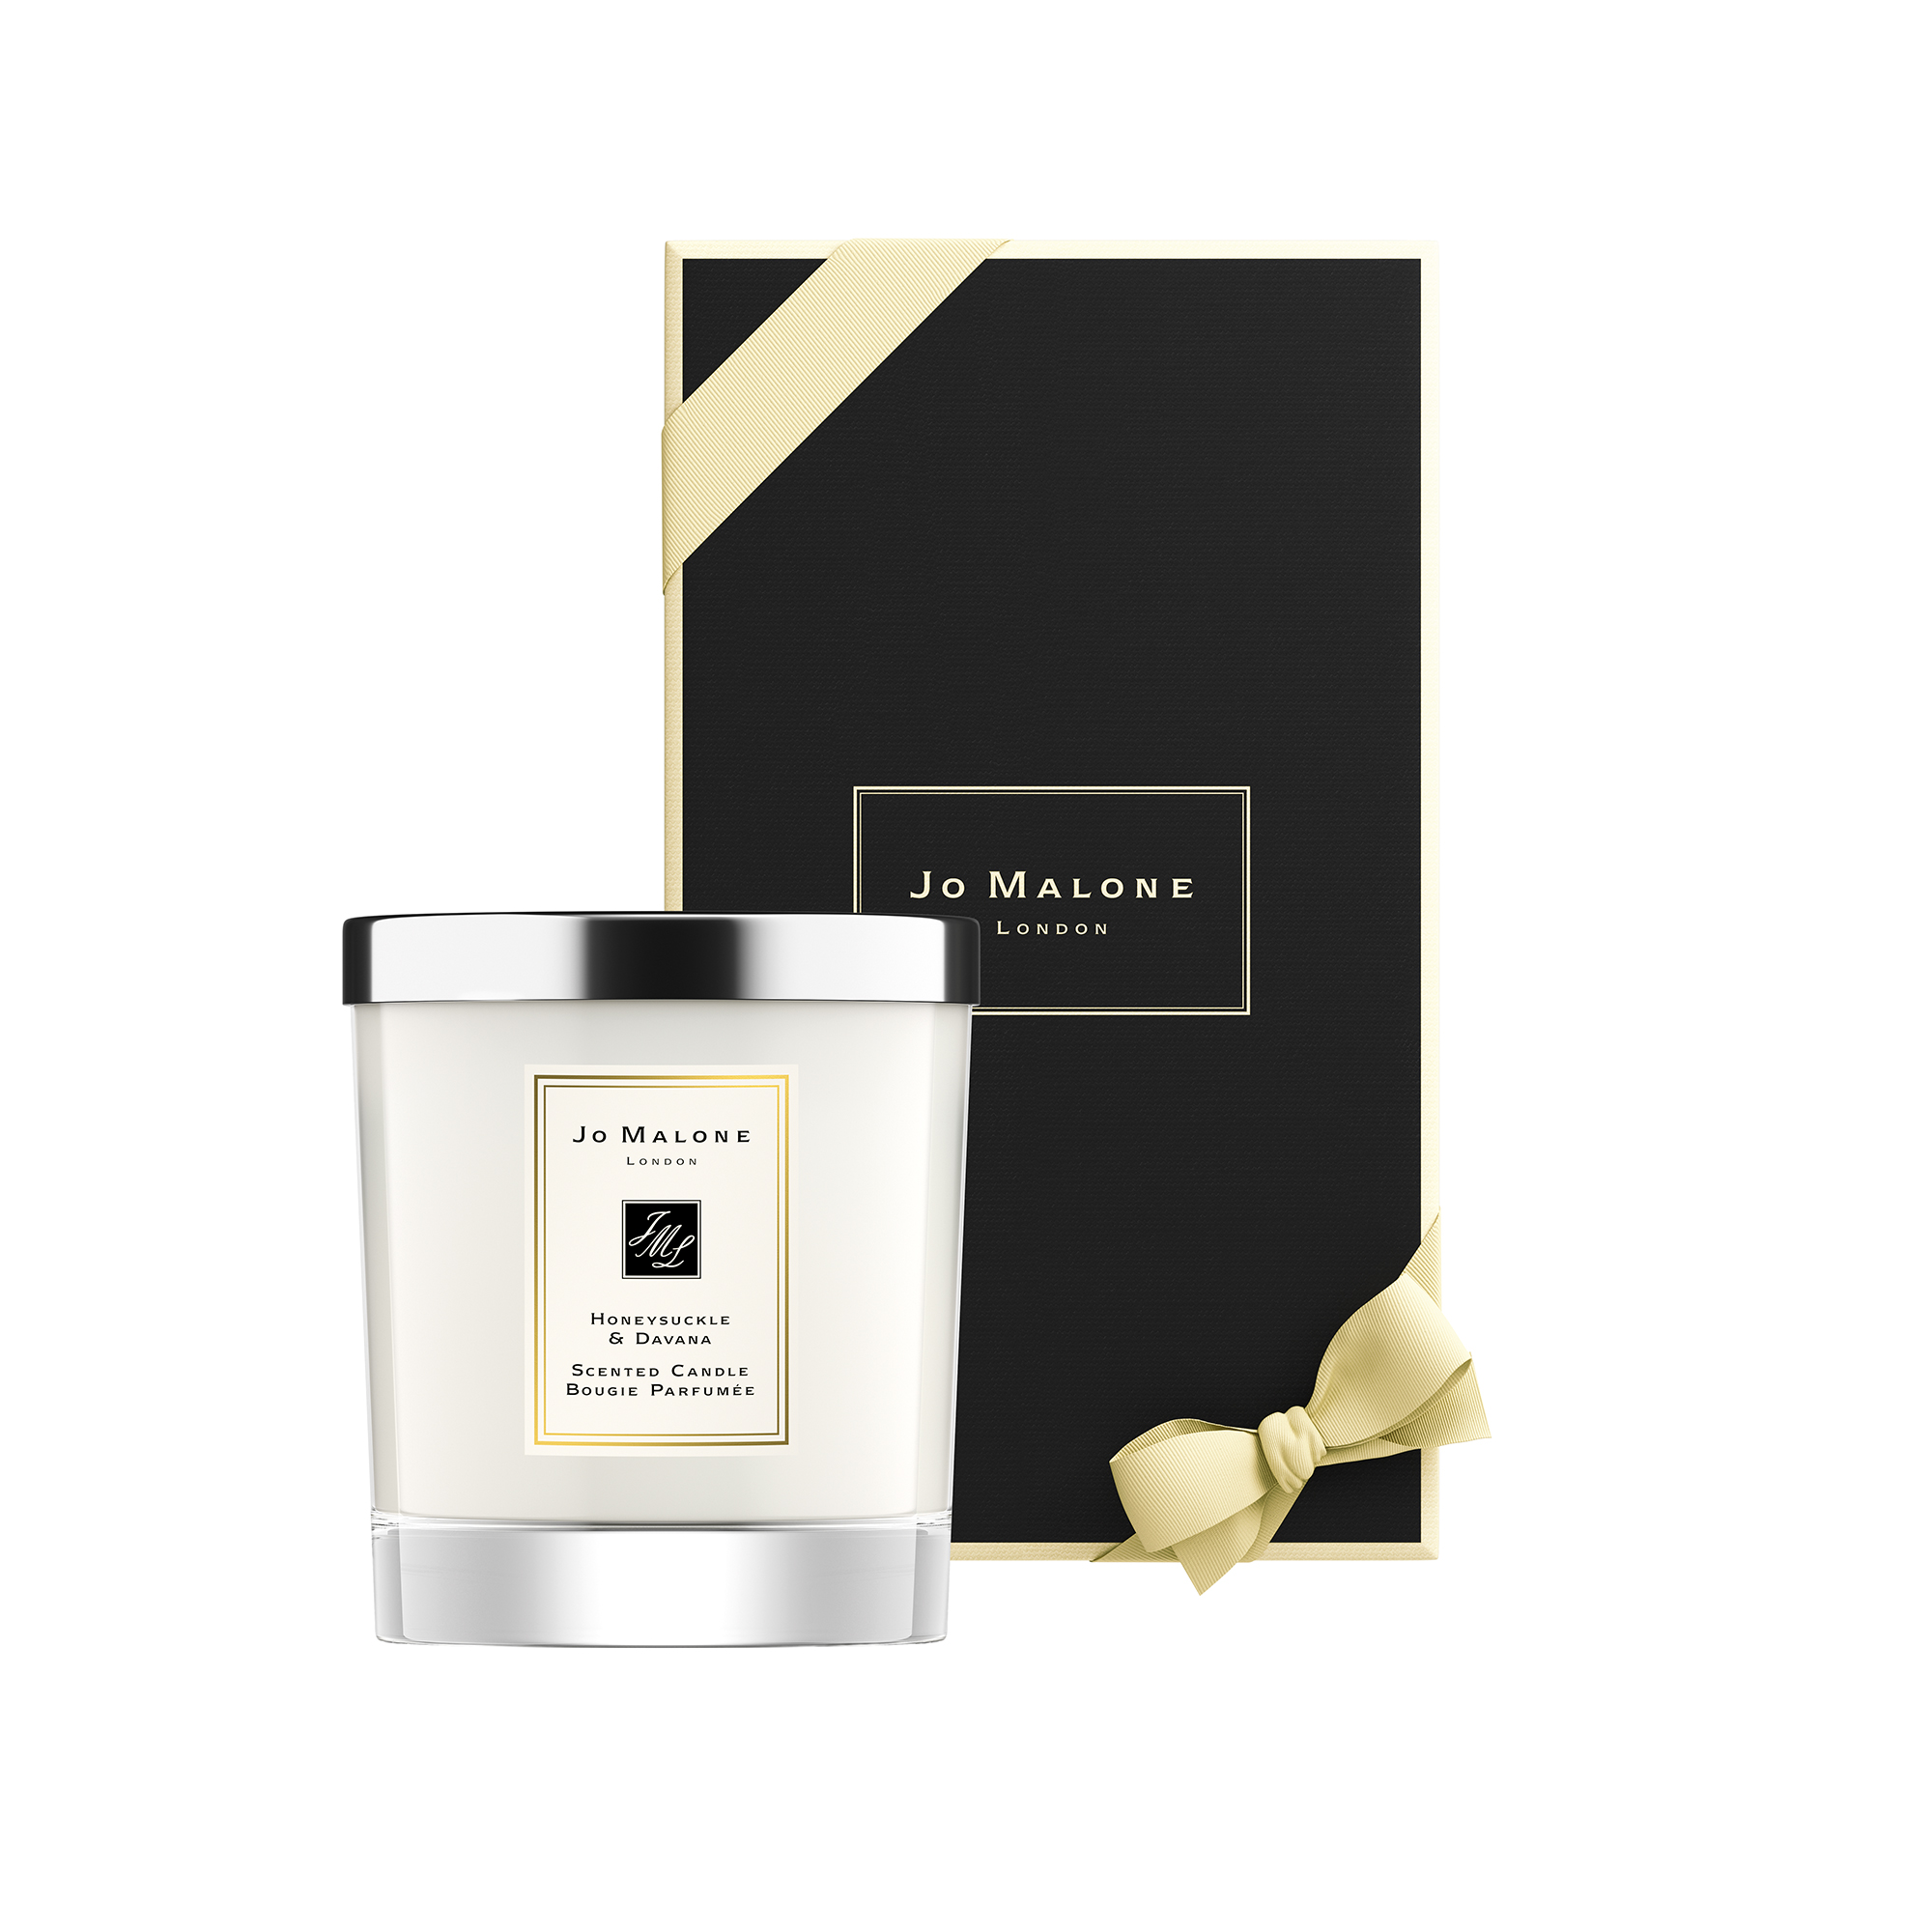 Honeysuckle & Davana Scented Candle 200 g